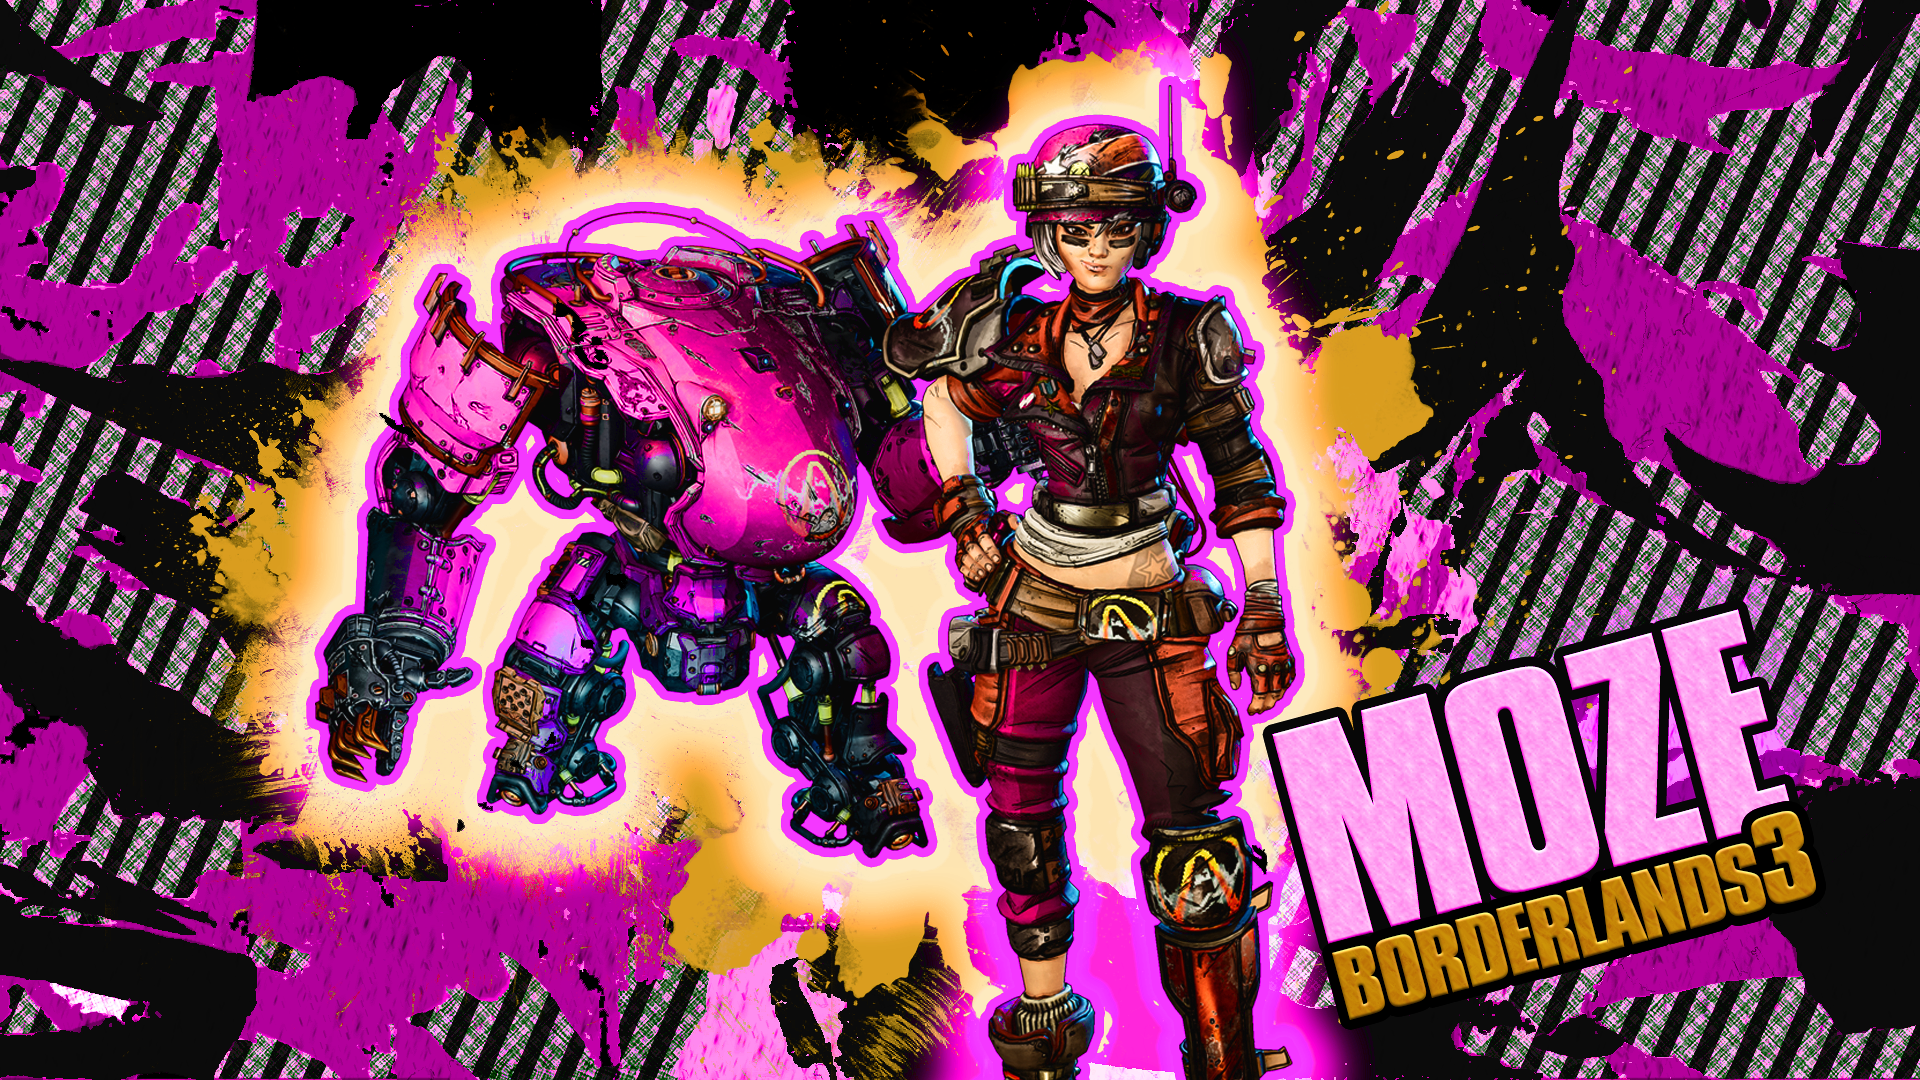 Borderlands 3 Moze By Yunie16 On Deviantart